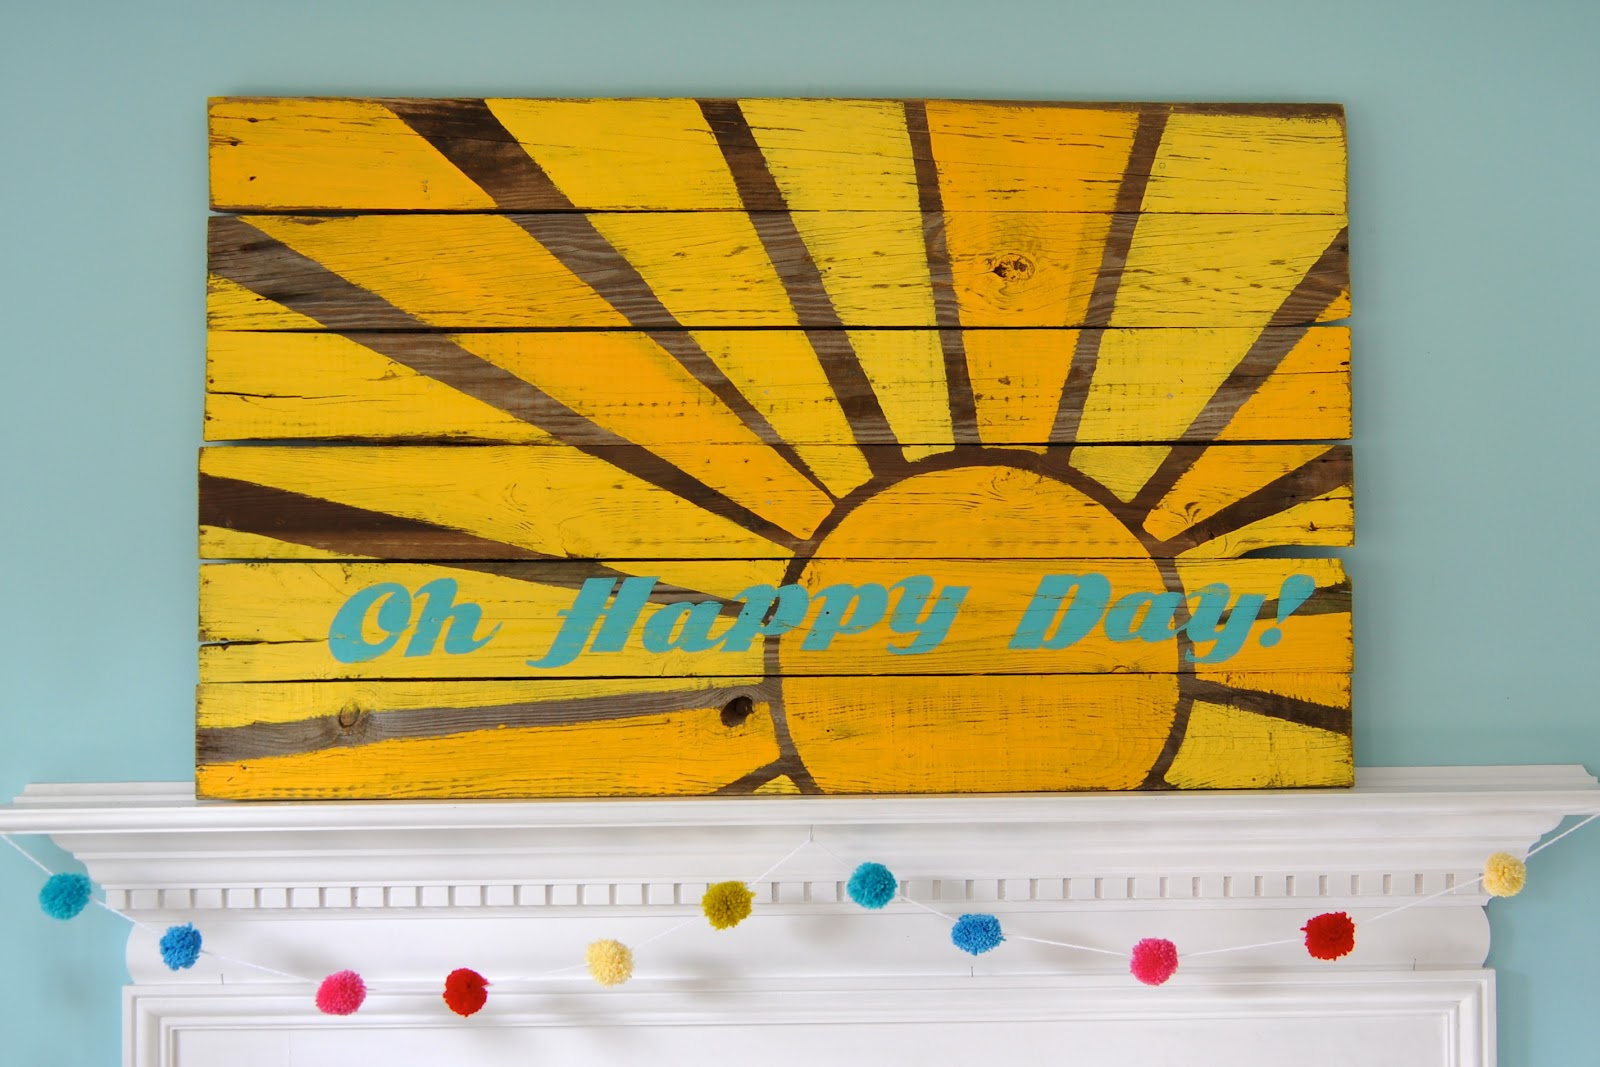 Little Bit Funky: Oh Happy Day! reclaimed wood art